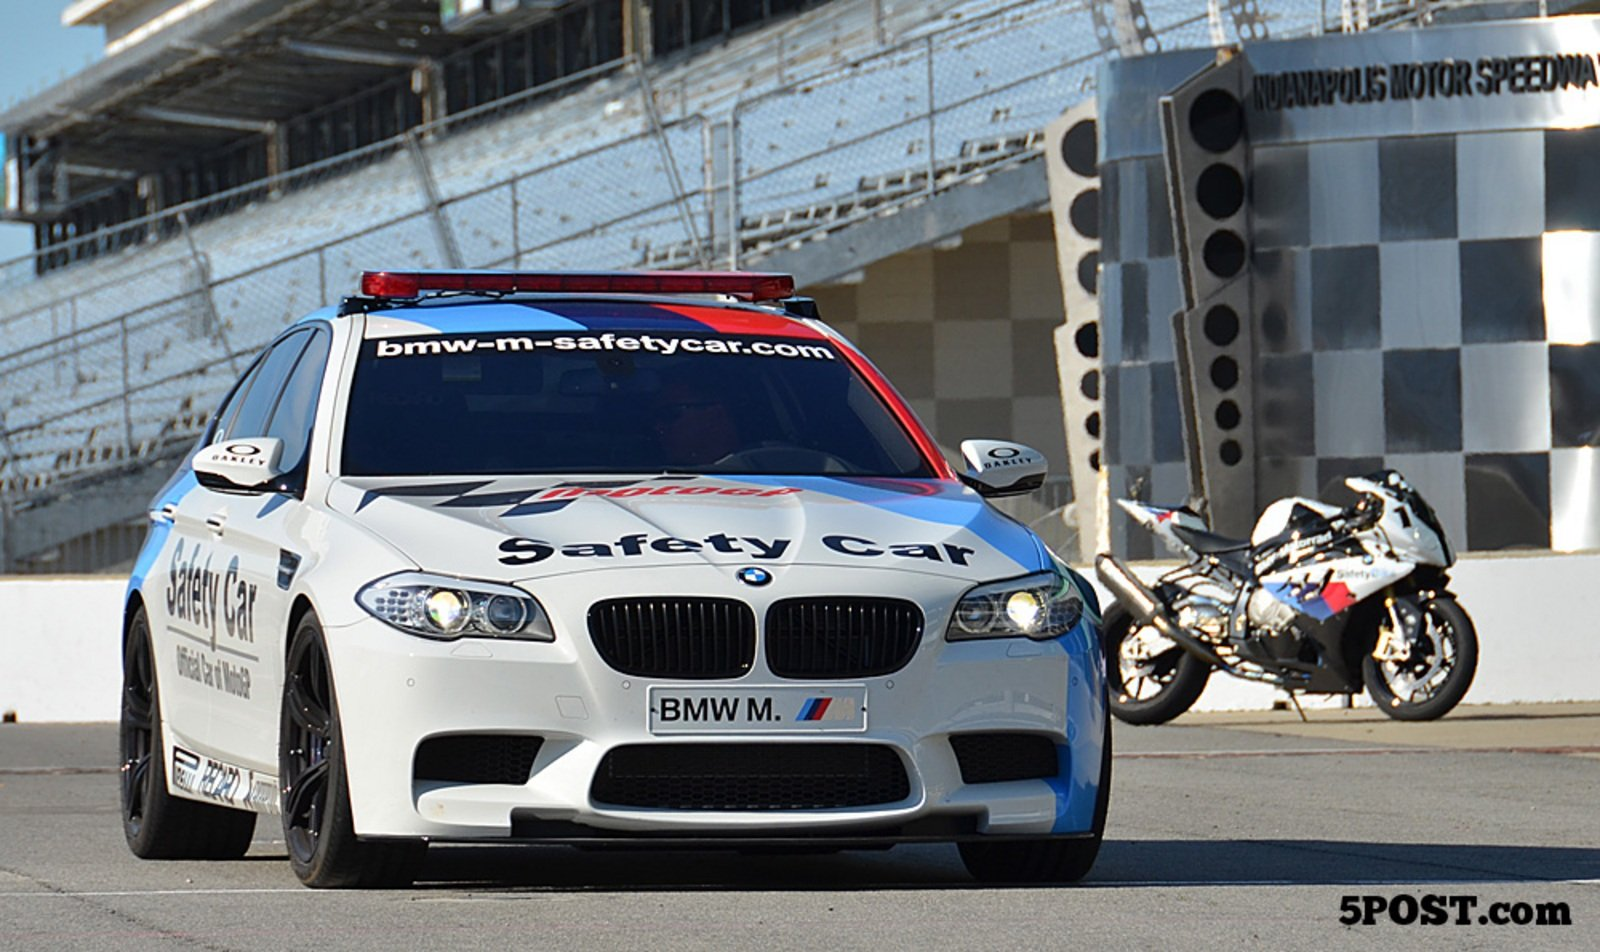 Bmw M5 News And Reviews Top Speed 2013 Fuse Box 2012 Moto Gp Safety Car